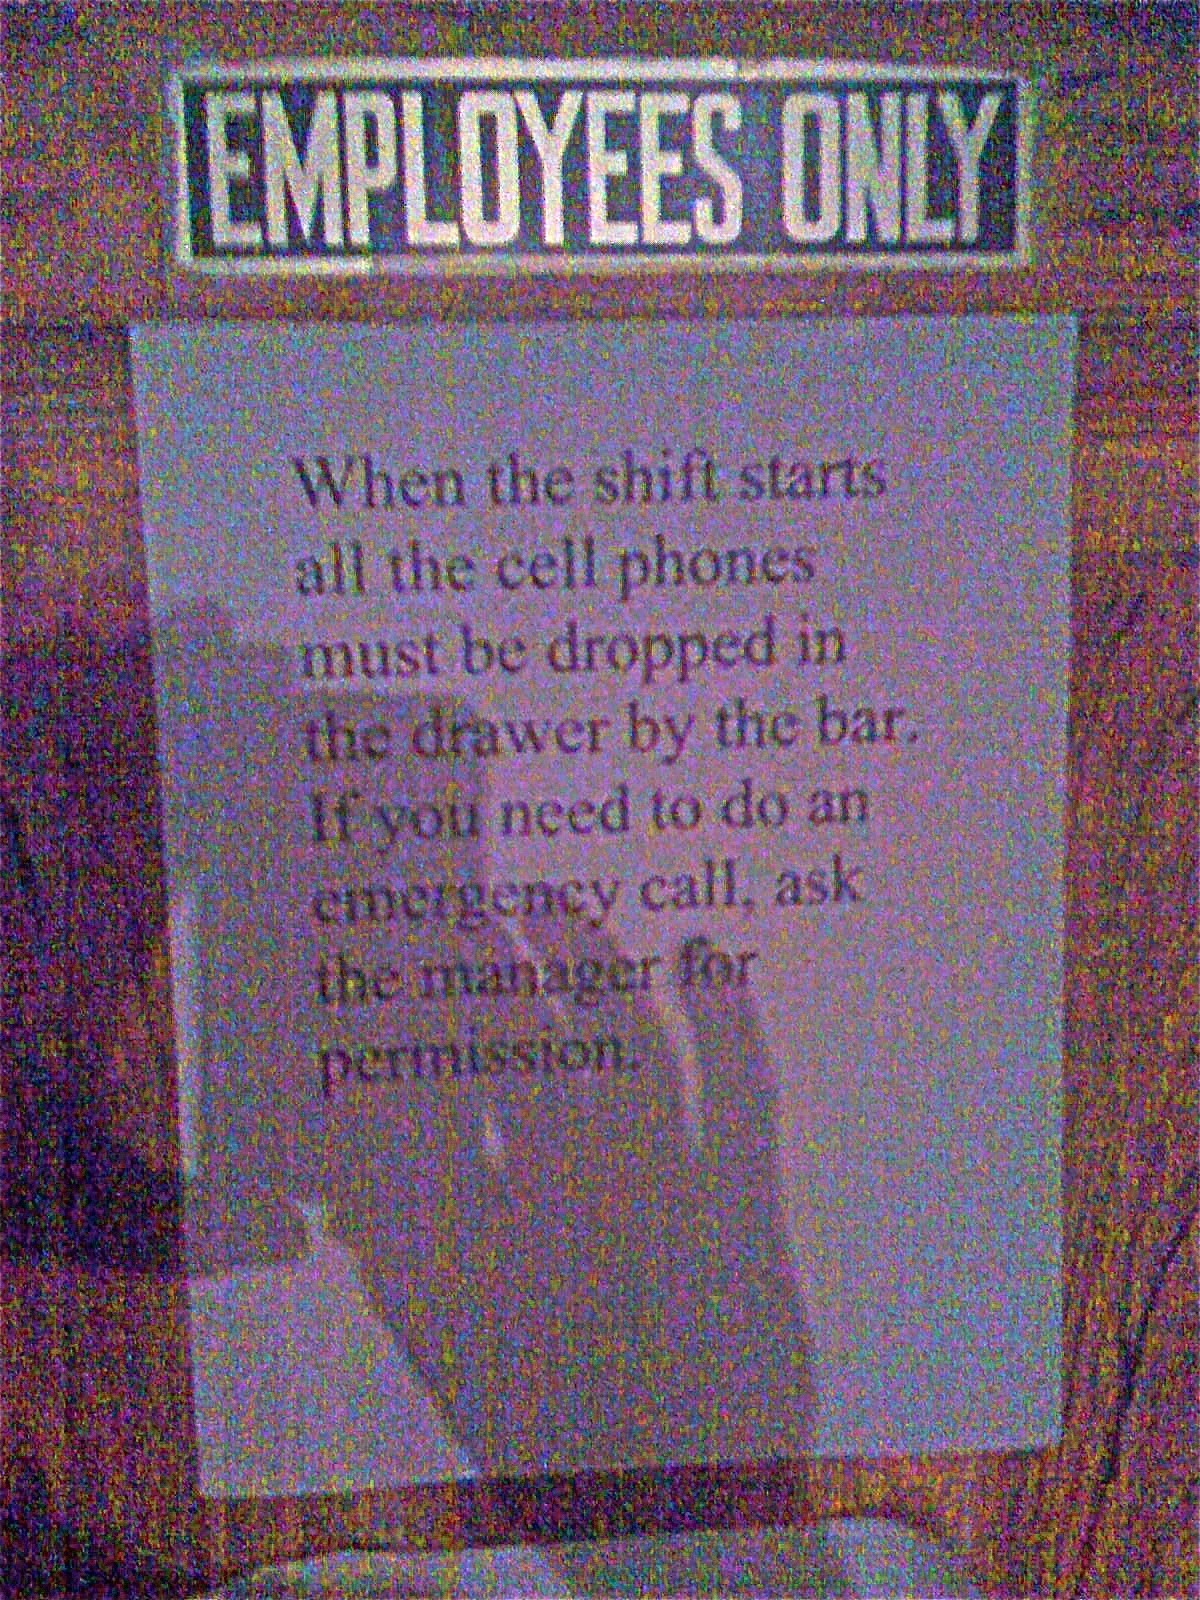 signs for retail employees